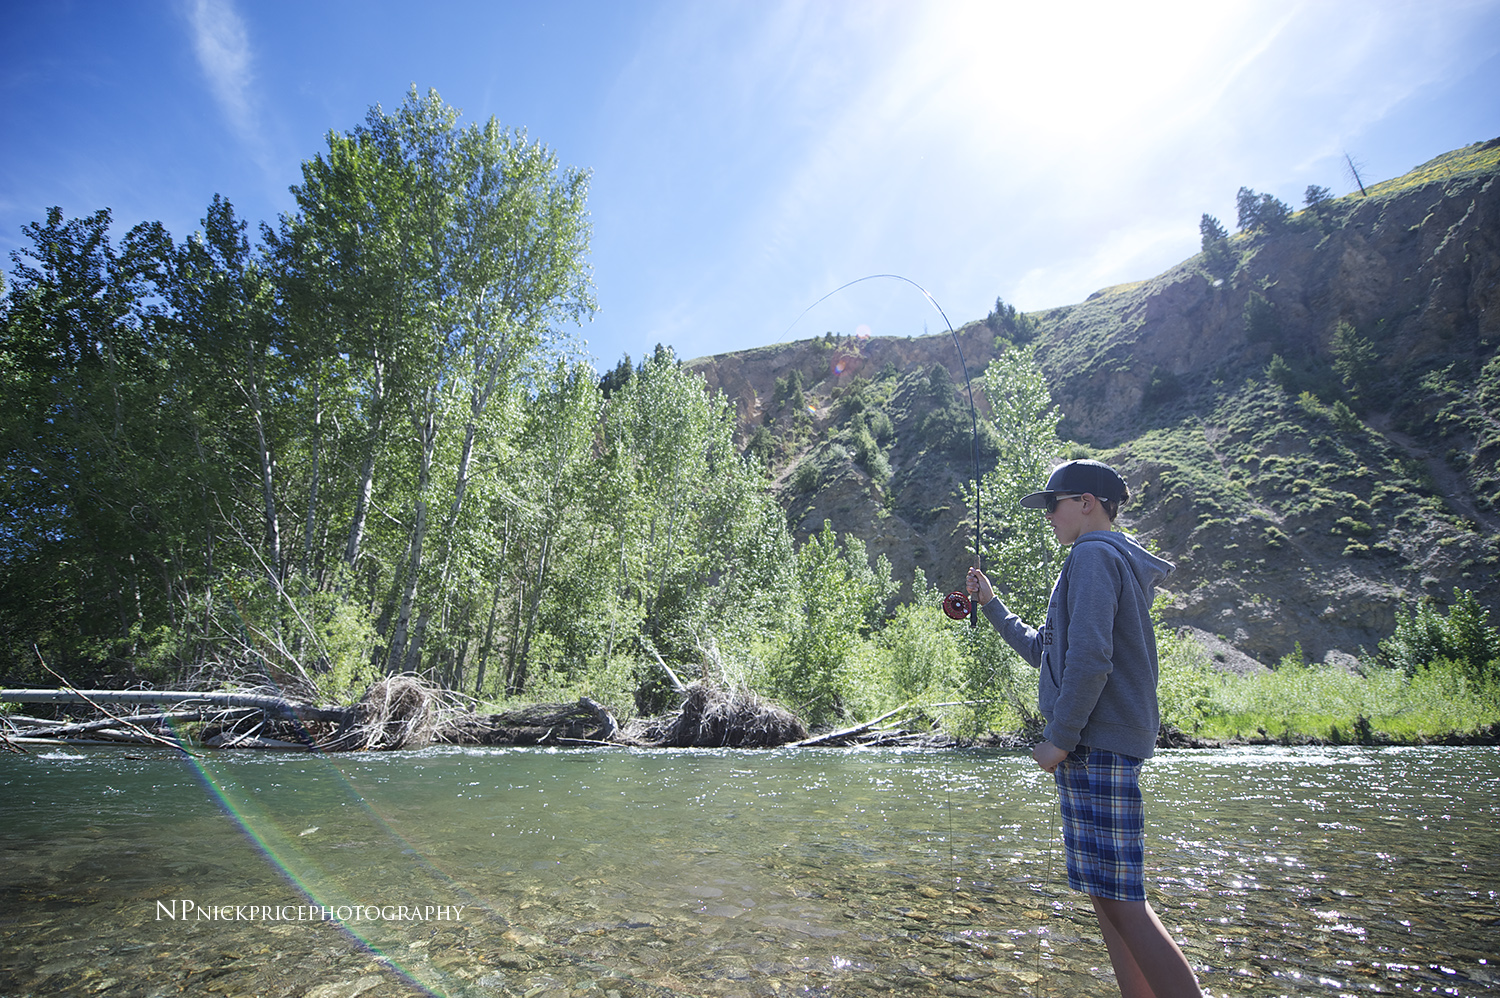 Will Price and his first solo fish. Big Wood River, Idaho. It's pretty cool to watch someone catch their first fly caught fish!